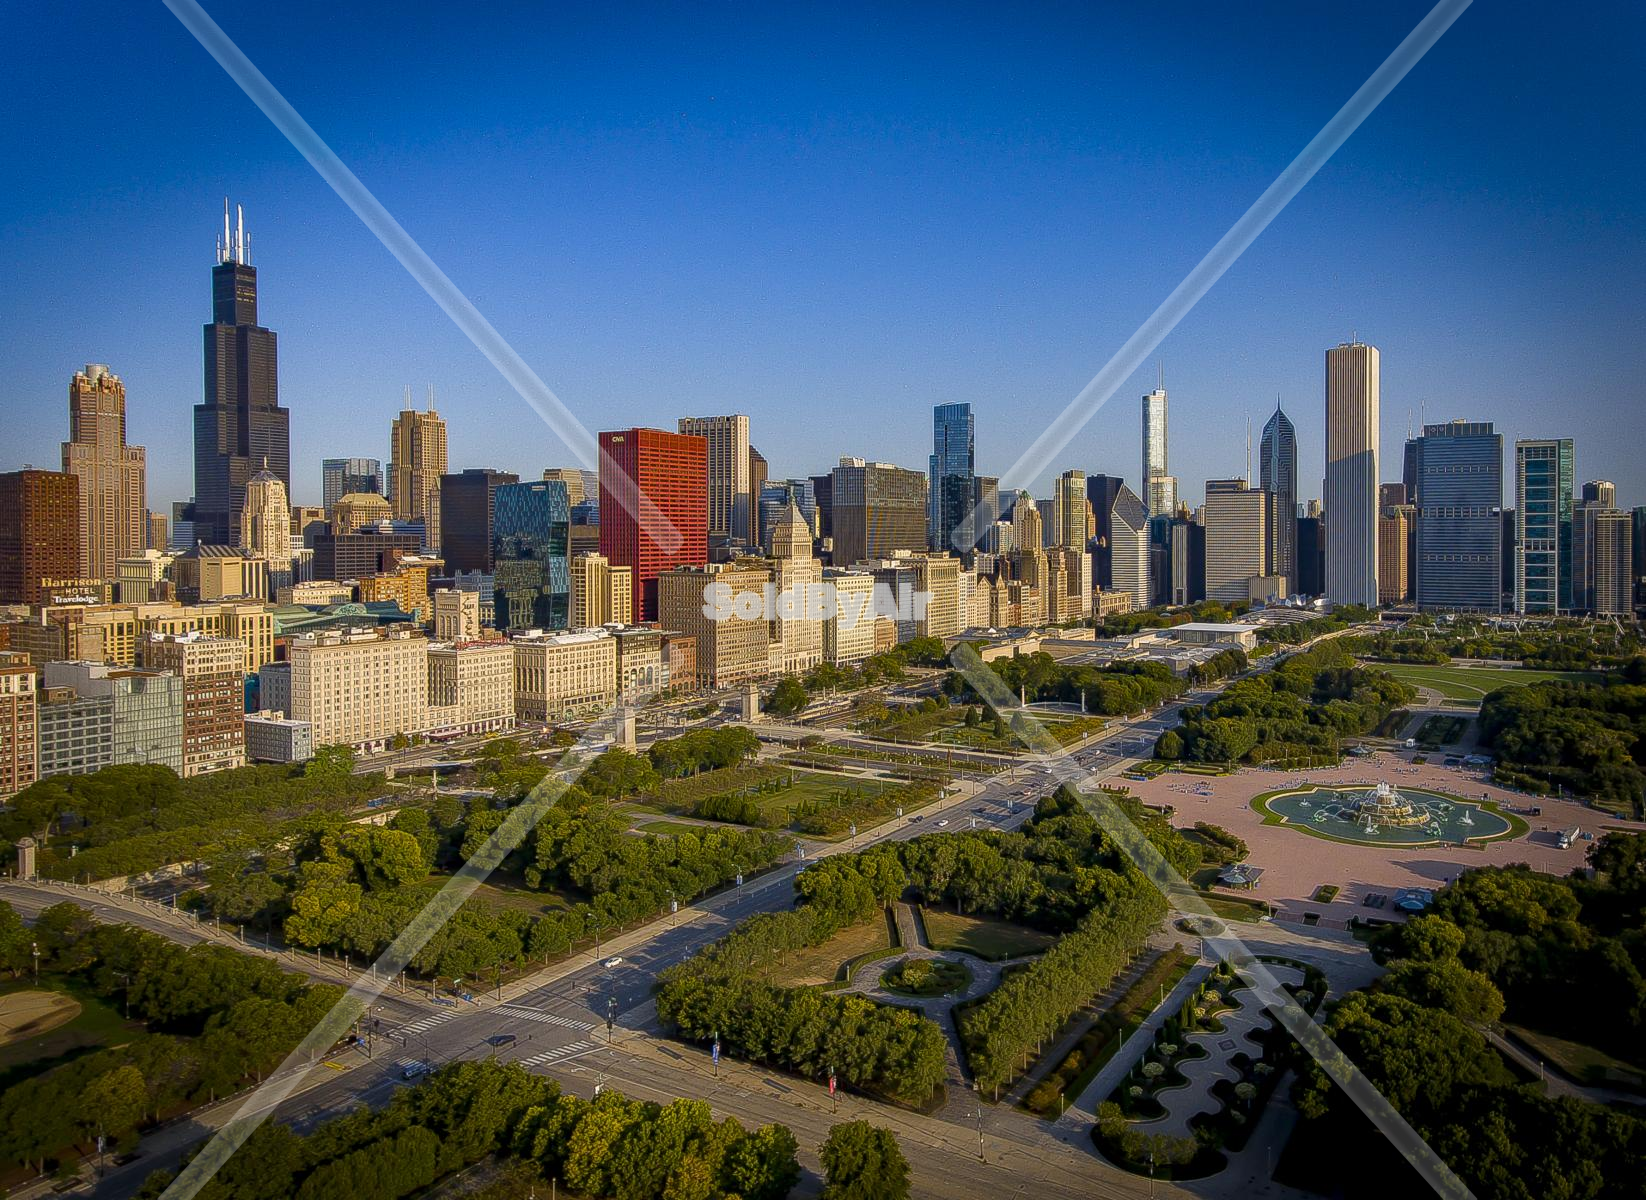 Drone Photo of Downtown area in Chicago Illinois